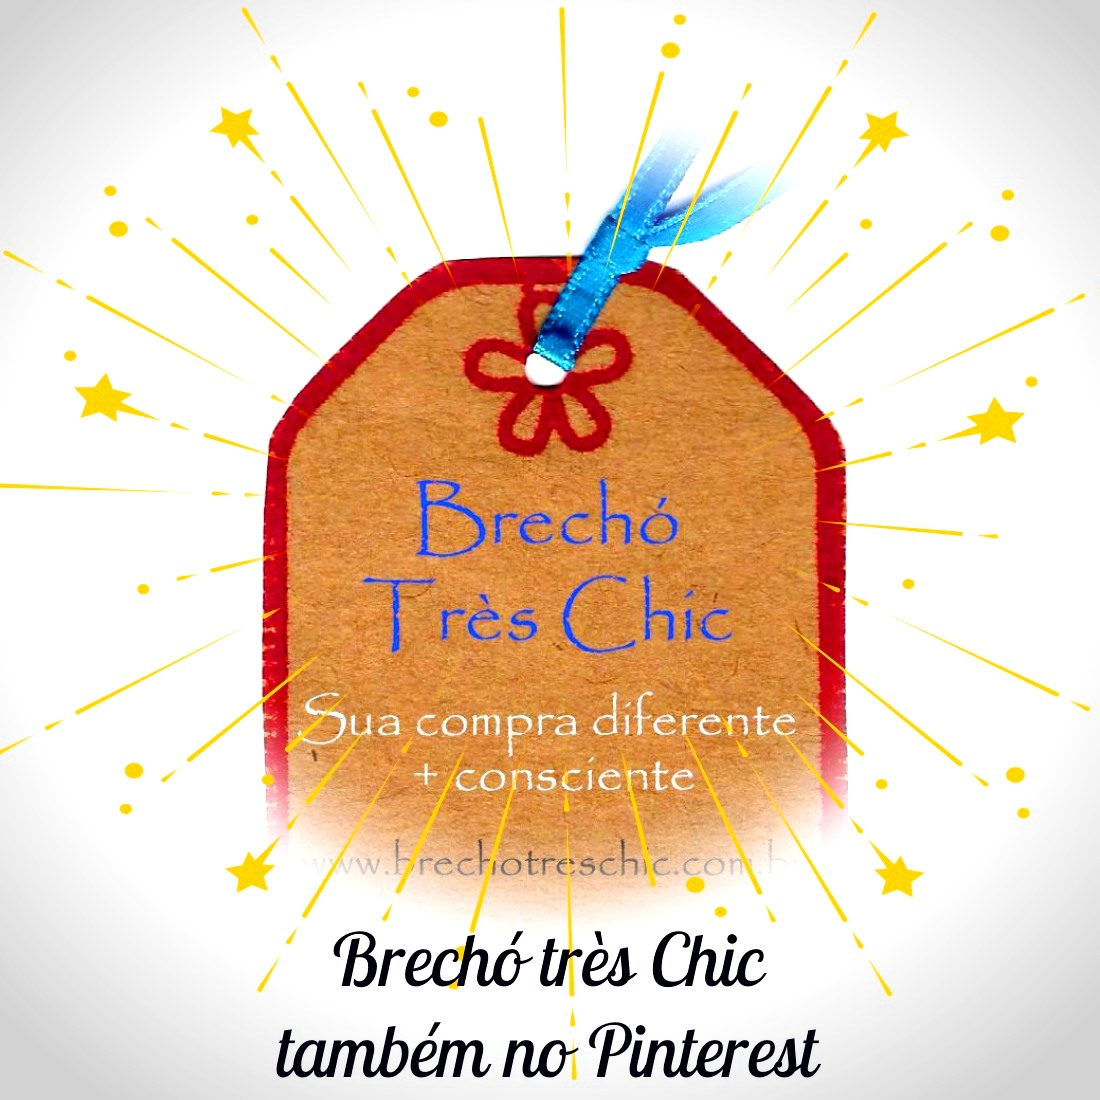 Brechó Très Chic no Pinterest